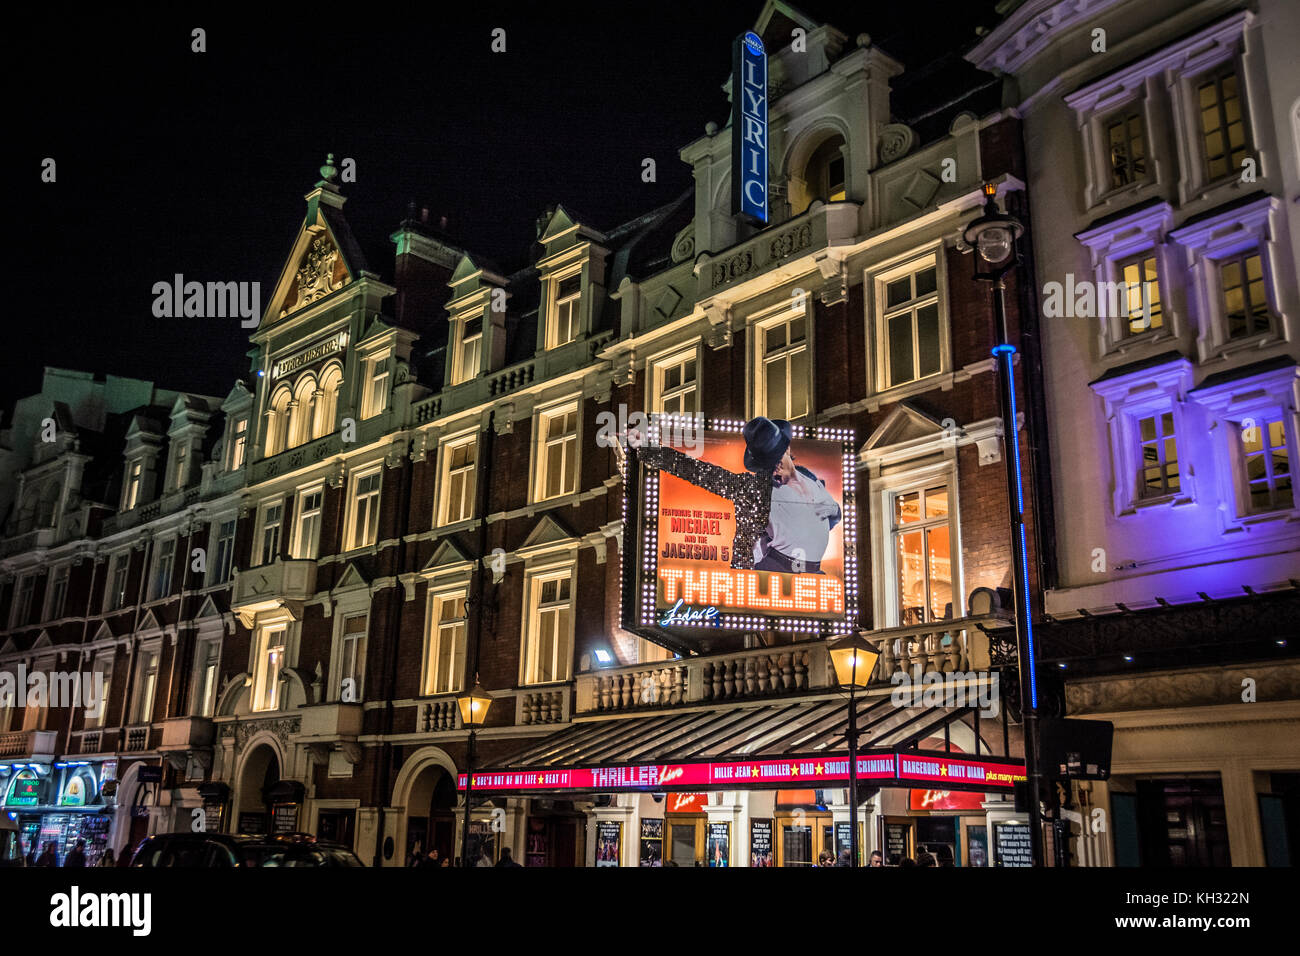 Thriller and Jamie on Shaftesbury Avenue in London's theatreland. - Stock Image